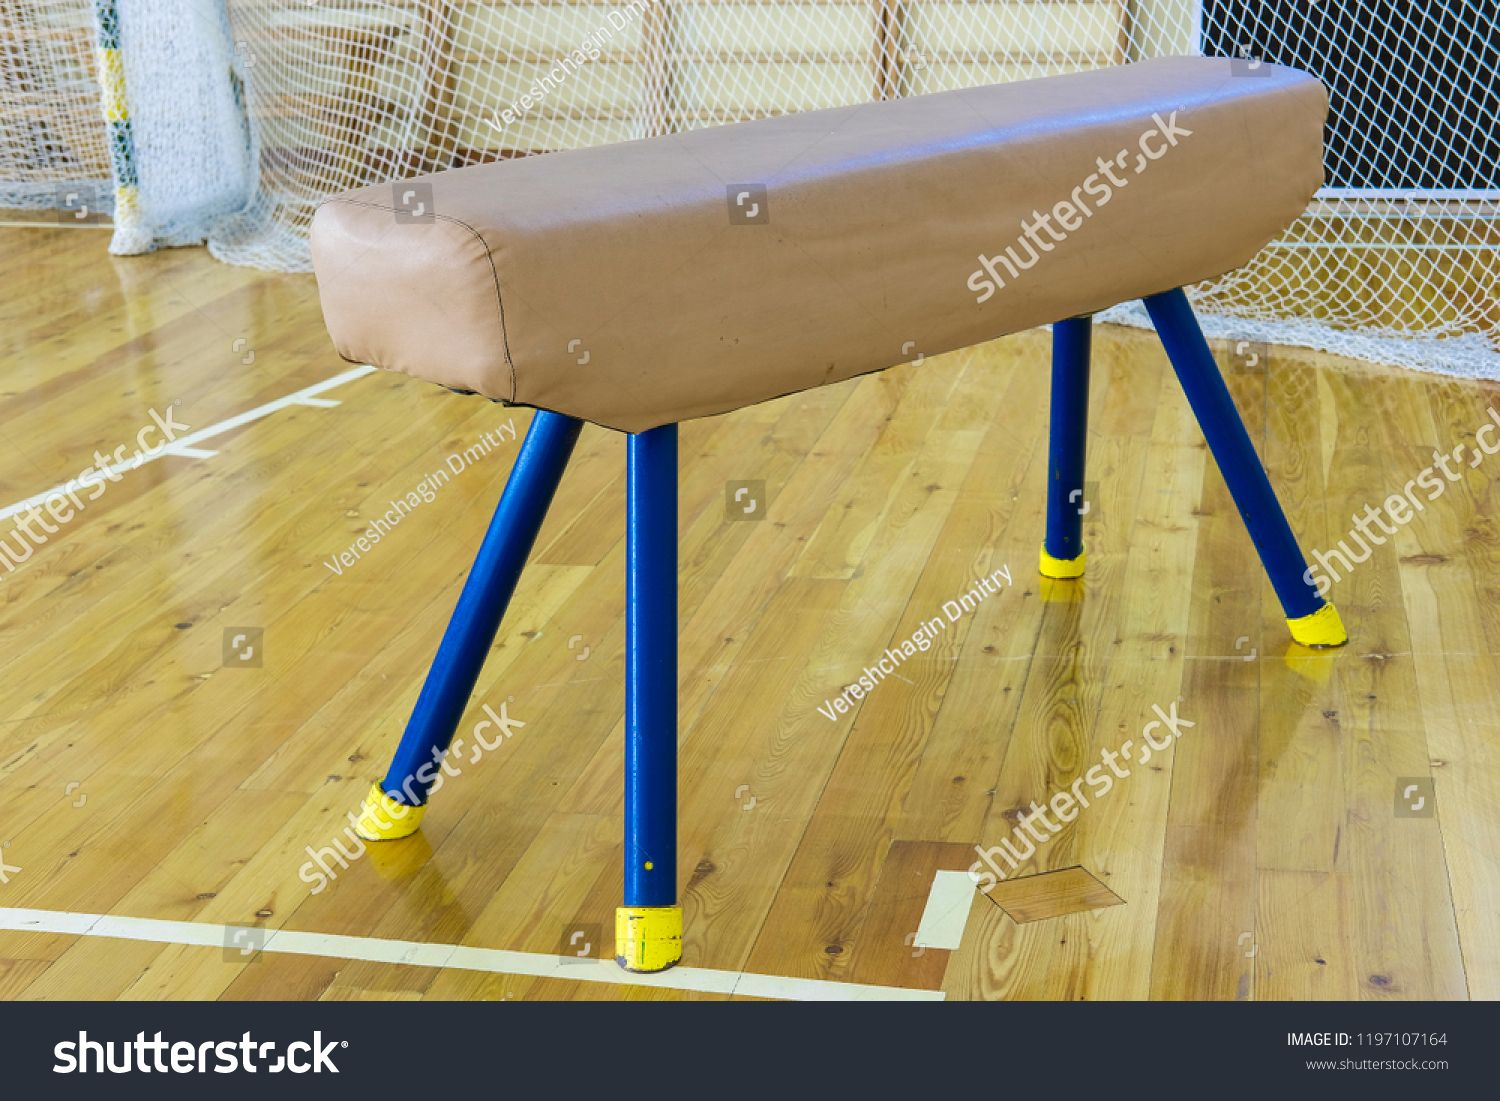 Moscow Russia September 23 2018 The Image Of Sport Buck In A School Sport Hall In Mosocw Ad Ad September M Sports Images Moscow Russia Stock Photos